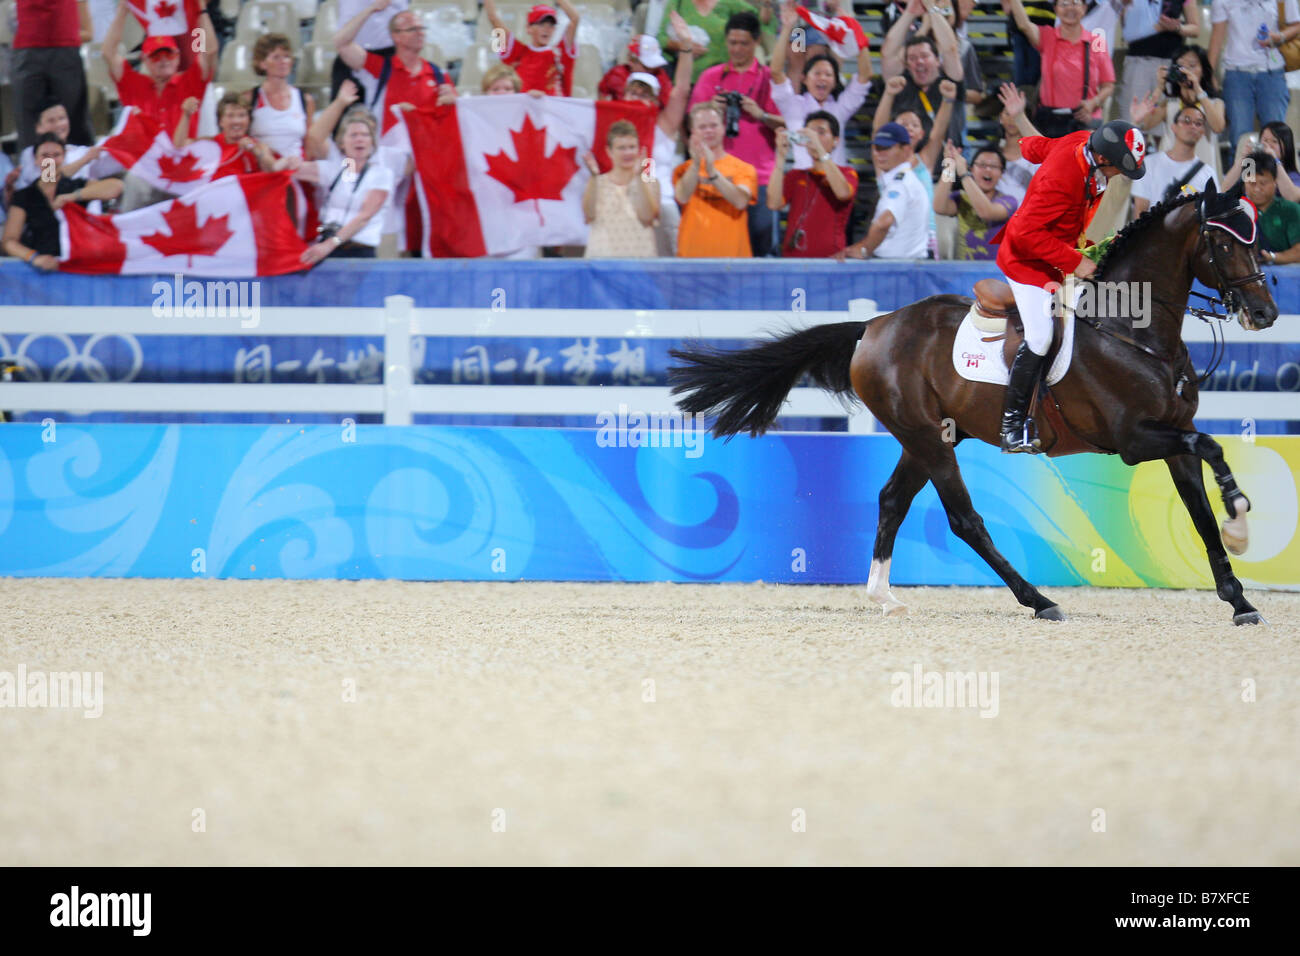 Eric Lamaze CAN August 21 2008 Equestrian Eric Lamaze CAN celebrates during the Beijing 2008 Summer Olympic Games - Stock Image